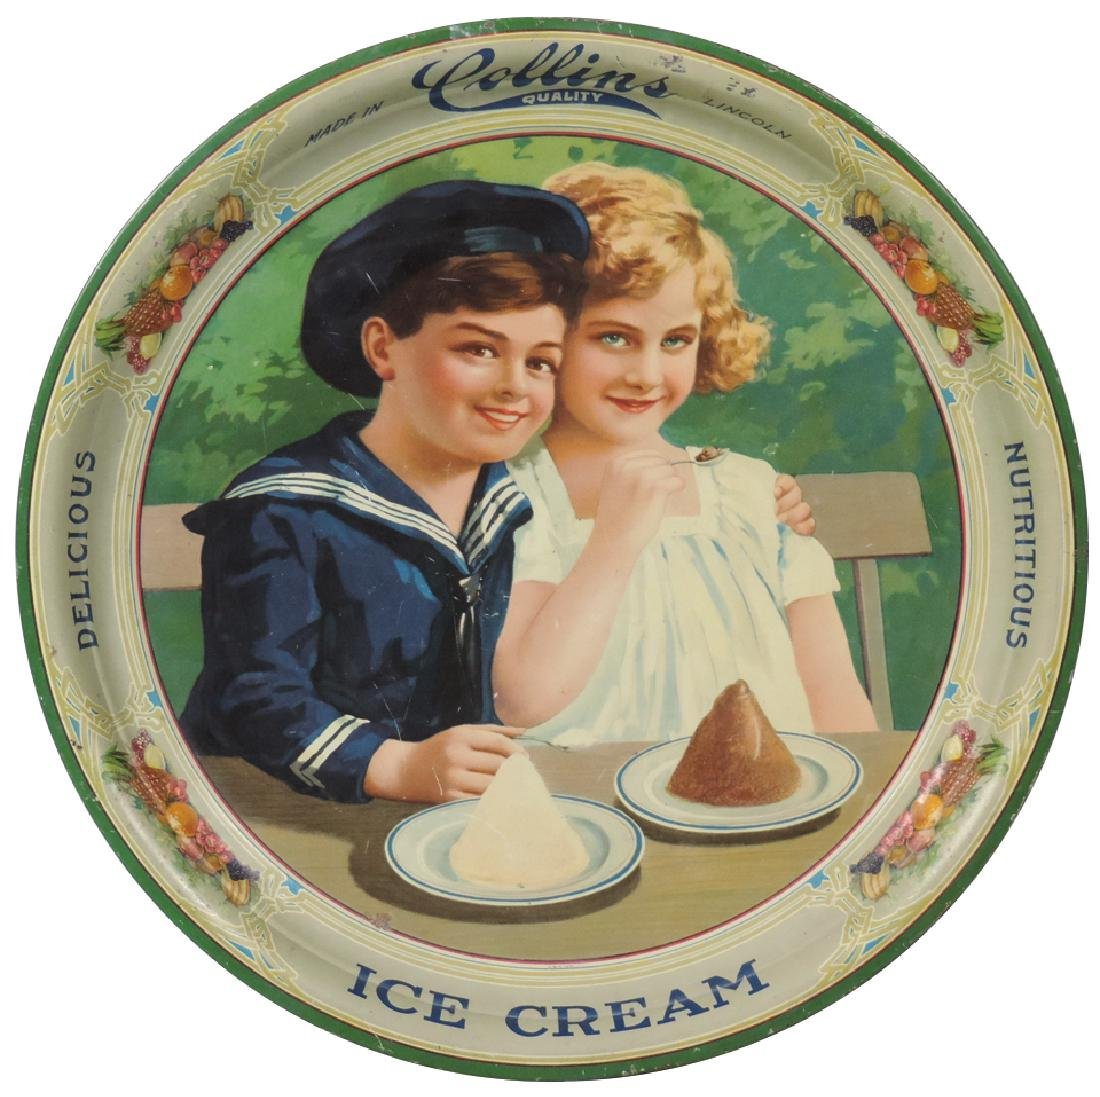 Ice cream serving tray, Collins-Lincoln, NE,